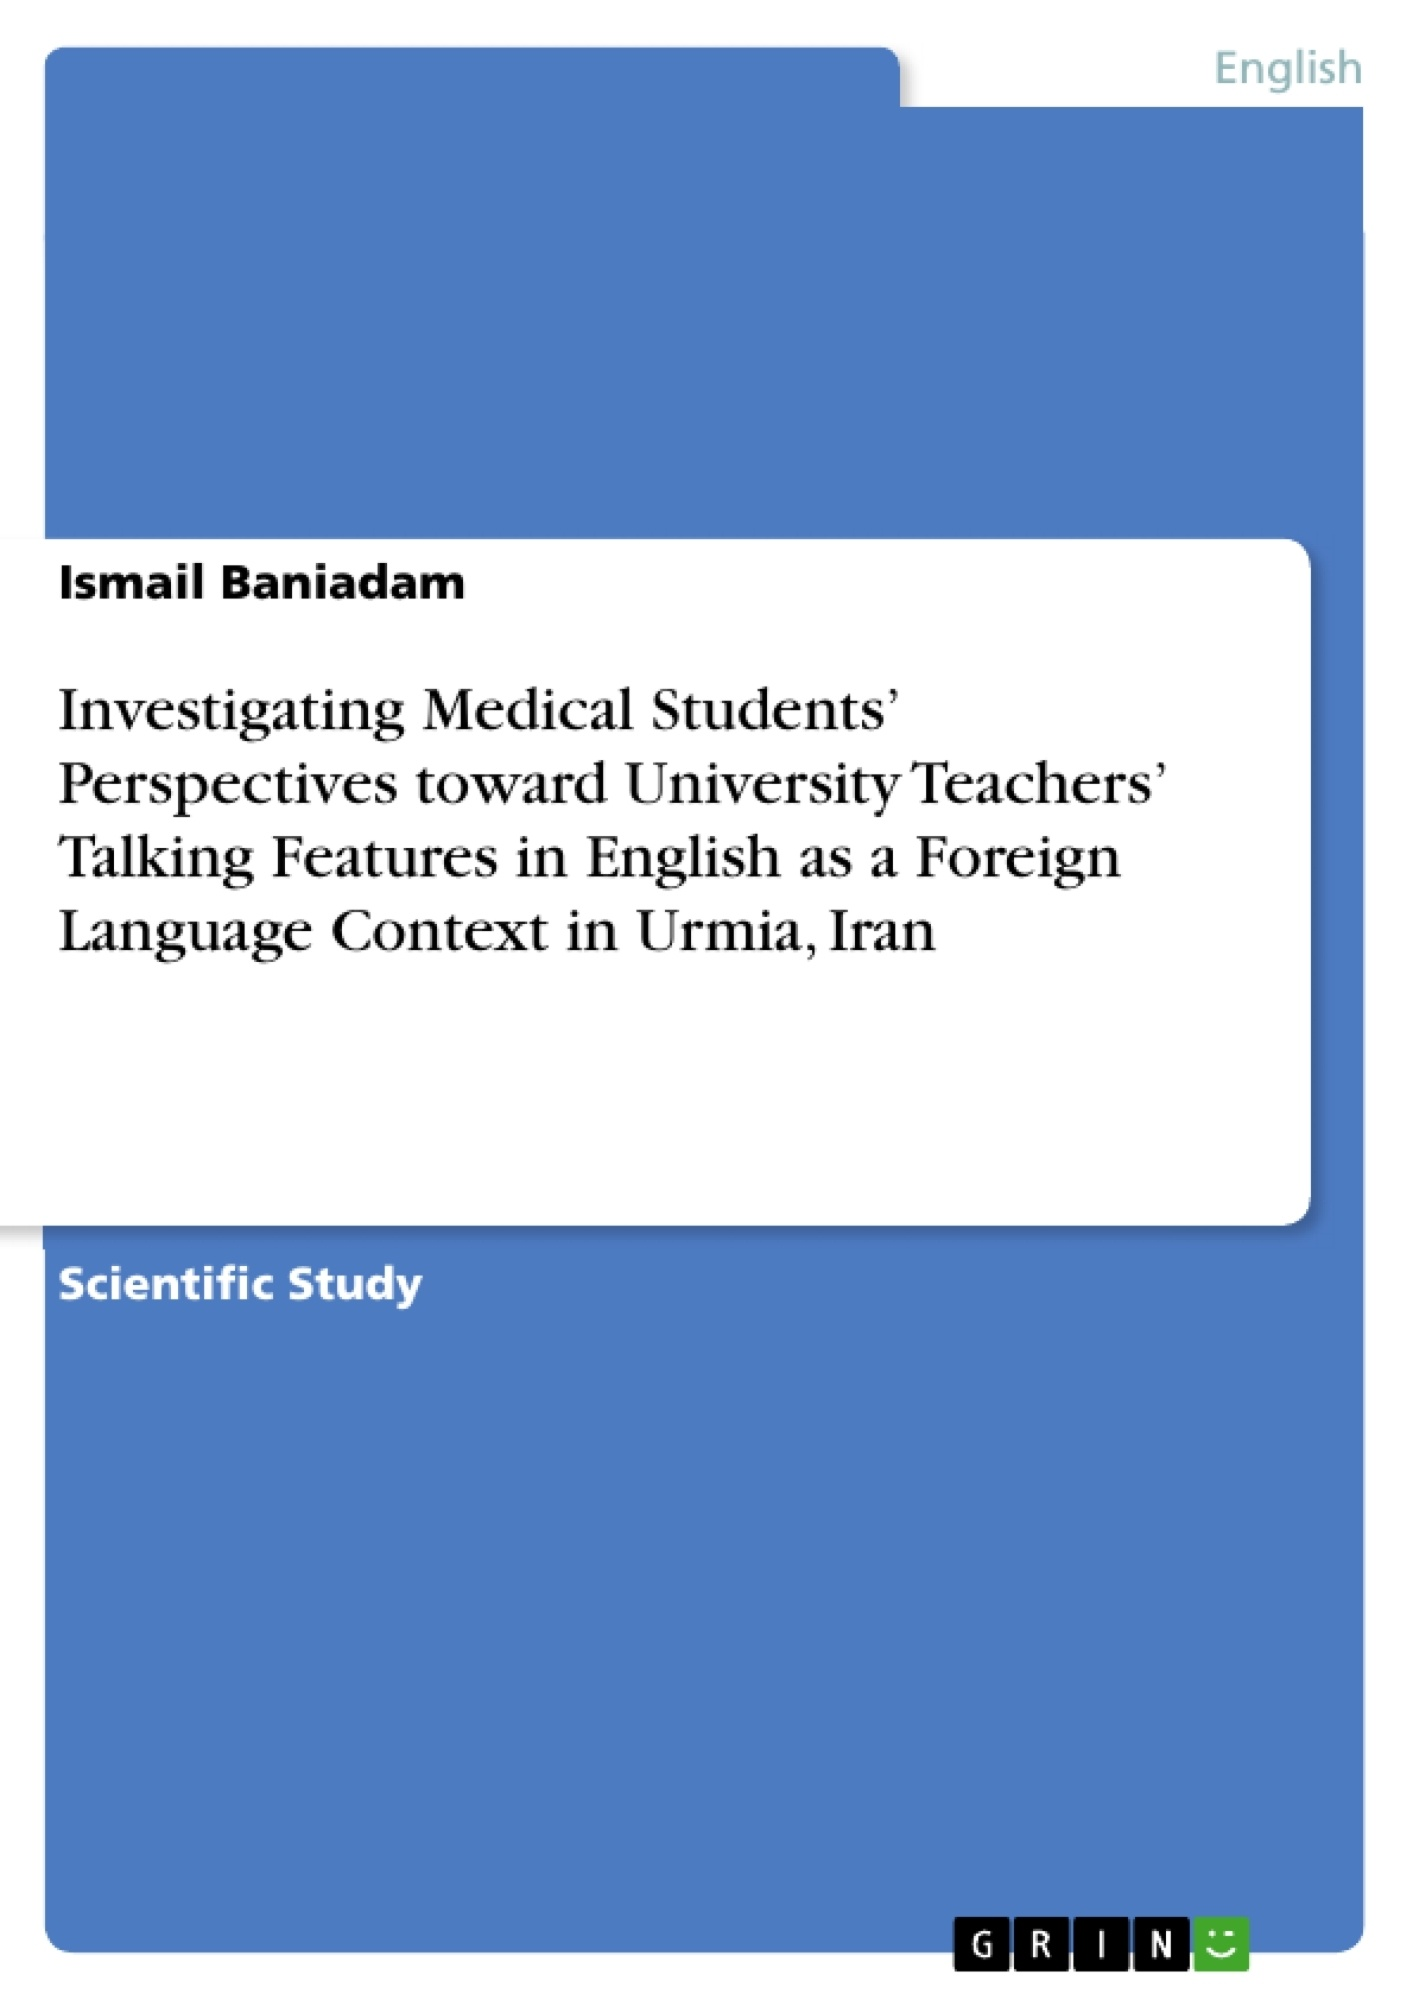 Title: Investigating Medical Students' Perspectives toward University Teachers' Talking Features in English as a Foreign Language Context in Urmia, Iran